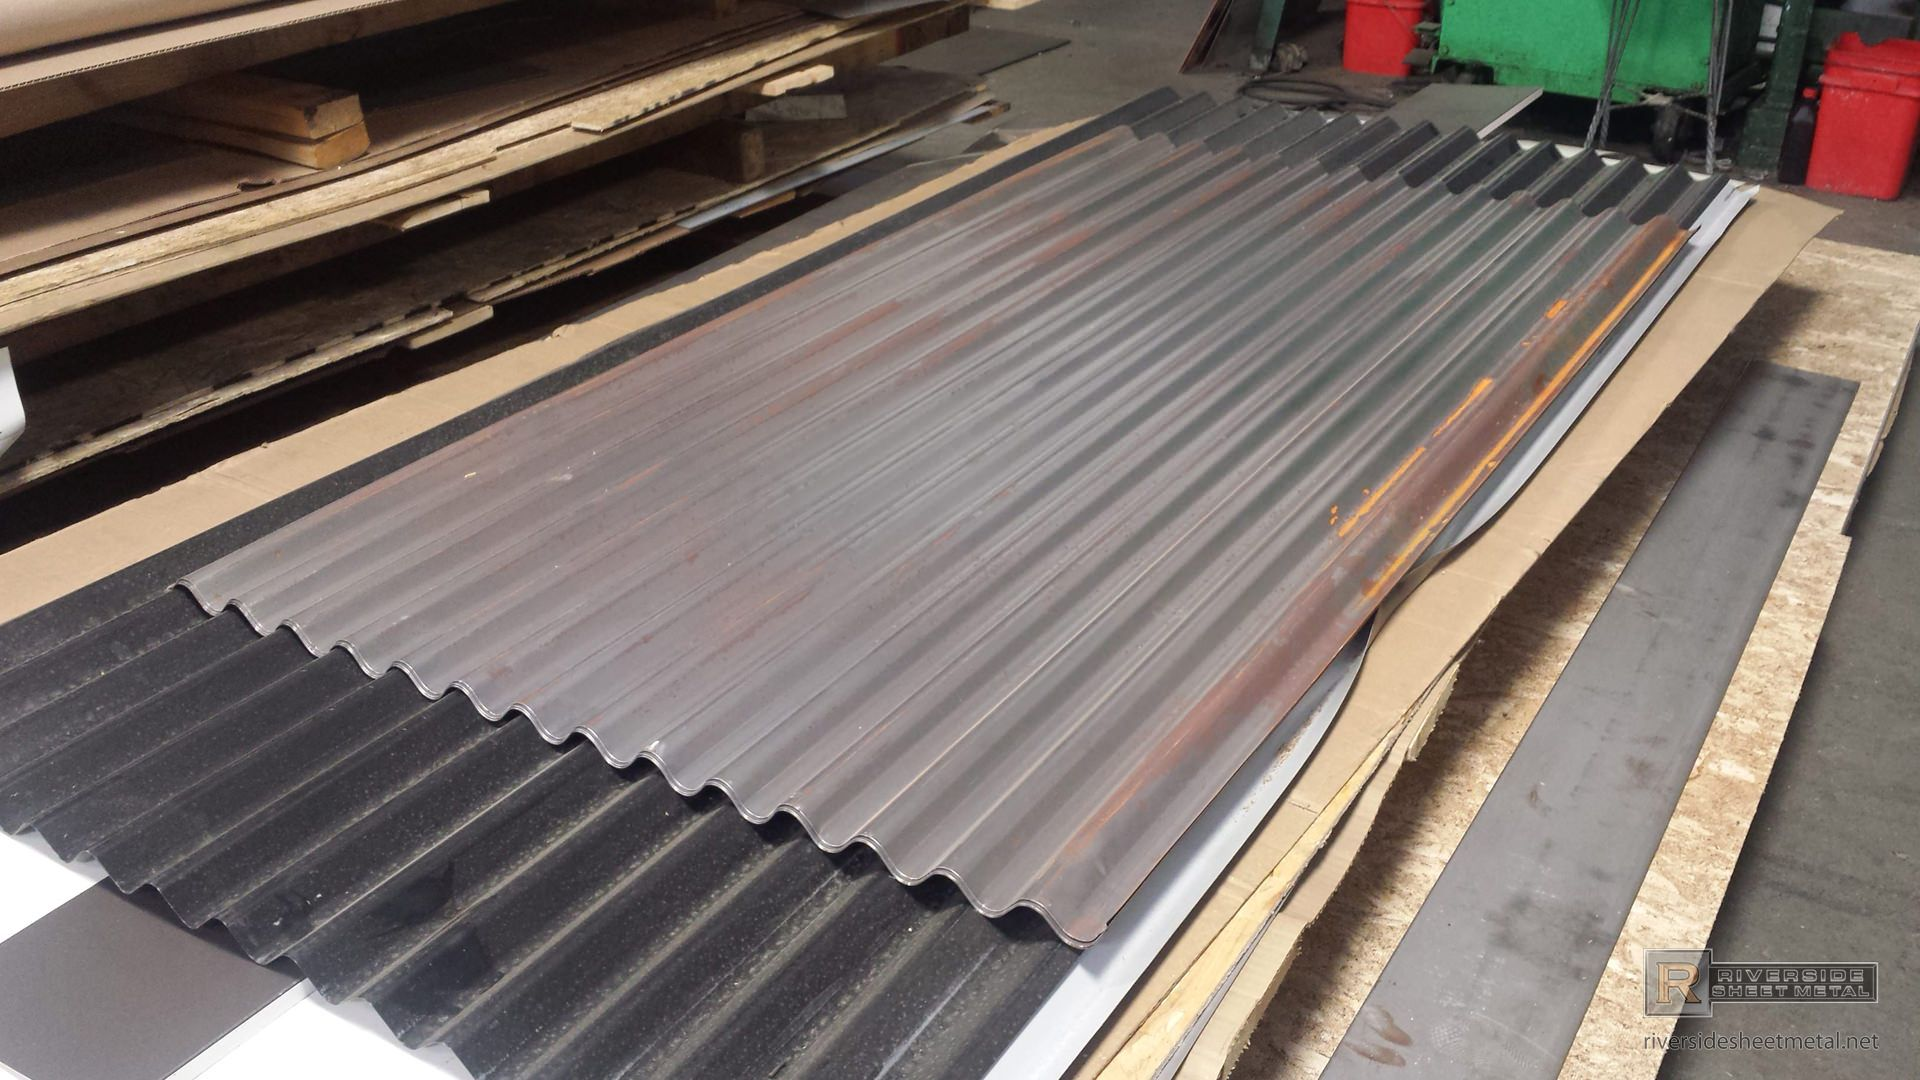 Corrugated Roof Panels Profile View Corrugated Roof Wall Panels Steel Aluminum Corten More In 2020 Corrugated Roofing Metal Roofing Prices Sheet Metal Roofing